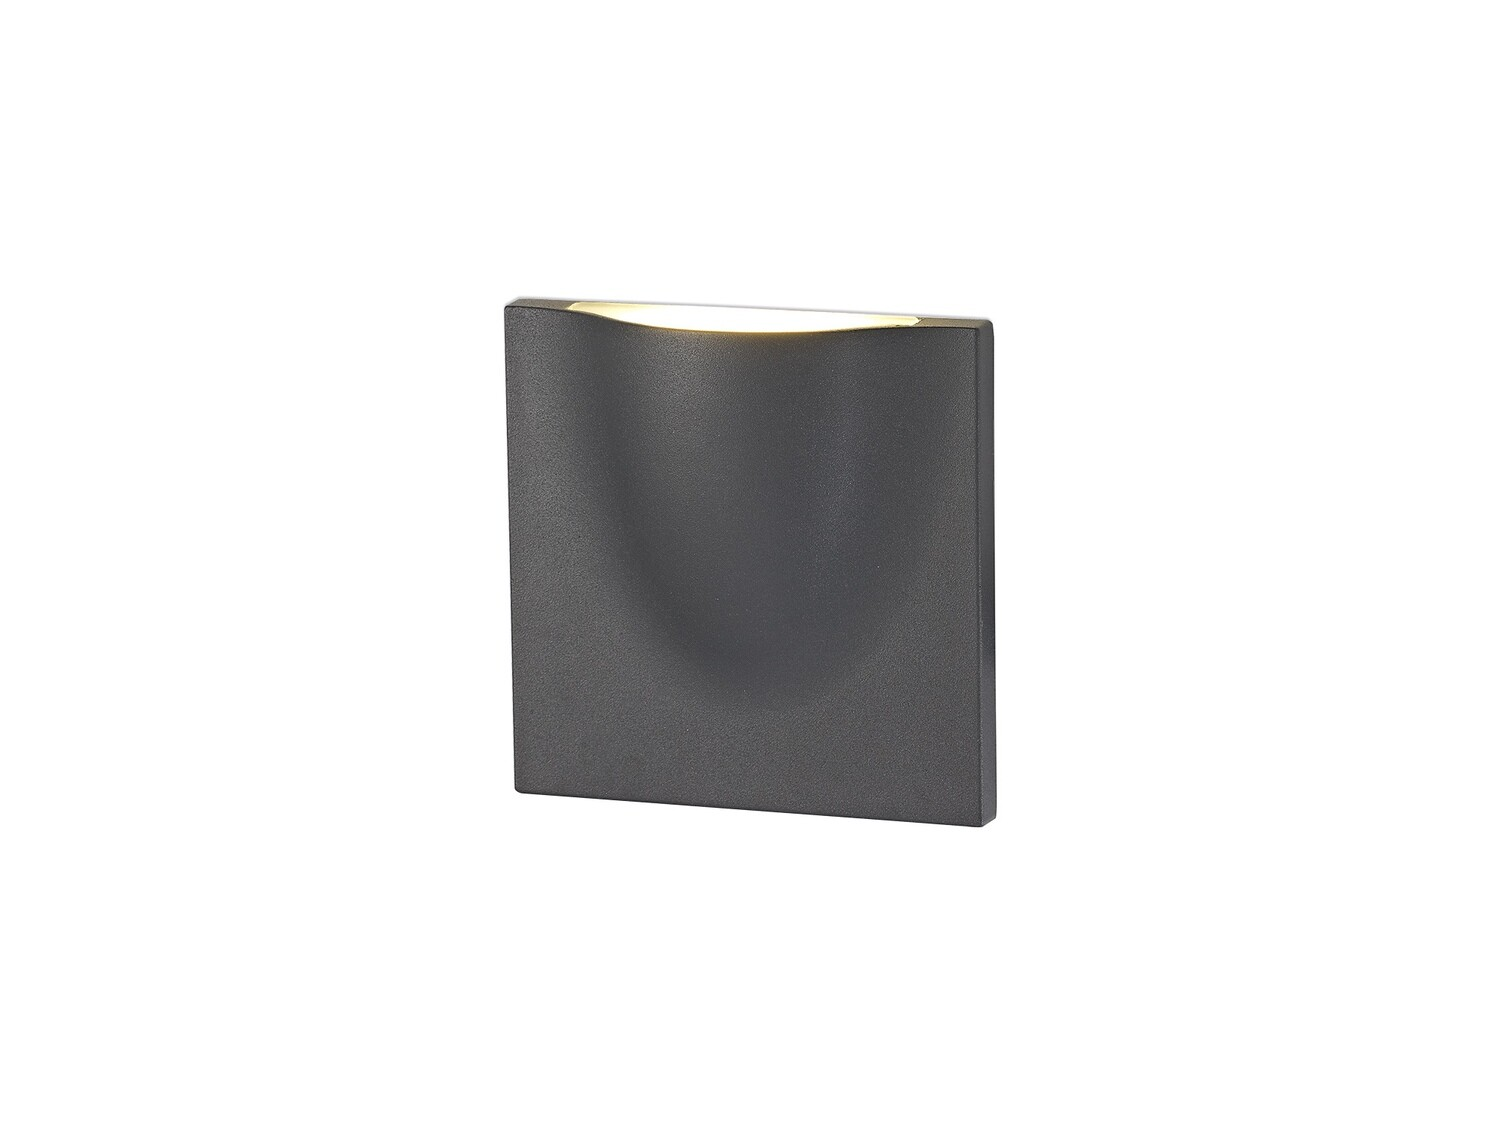 Alioth Wall Lamp, 1 x 6W LED, 3000K, 510lm, IP54, Anthracite